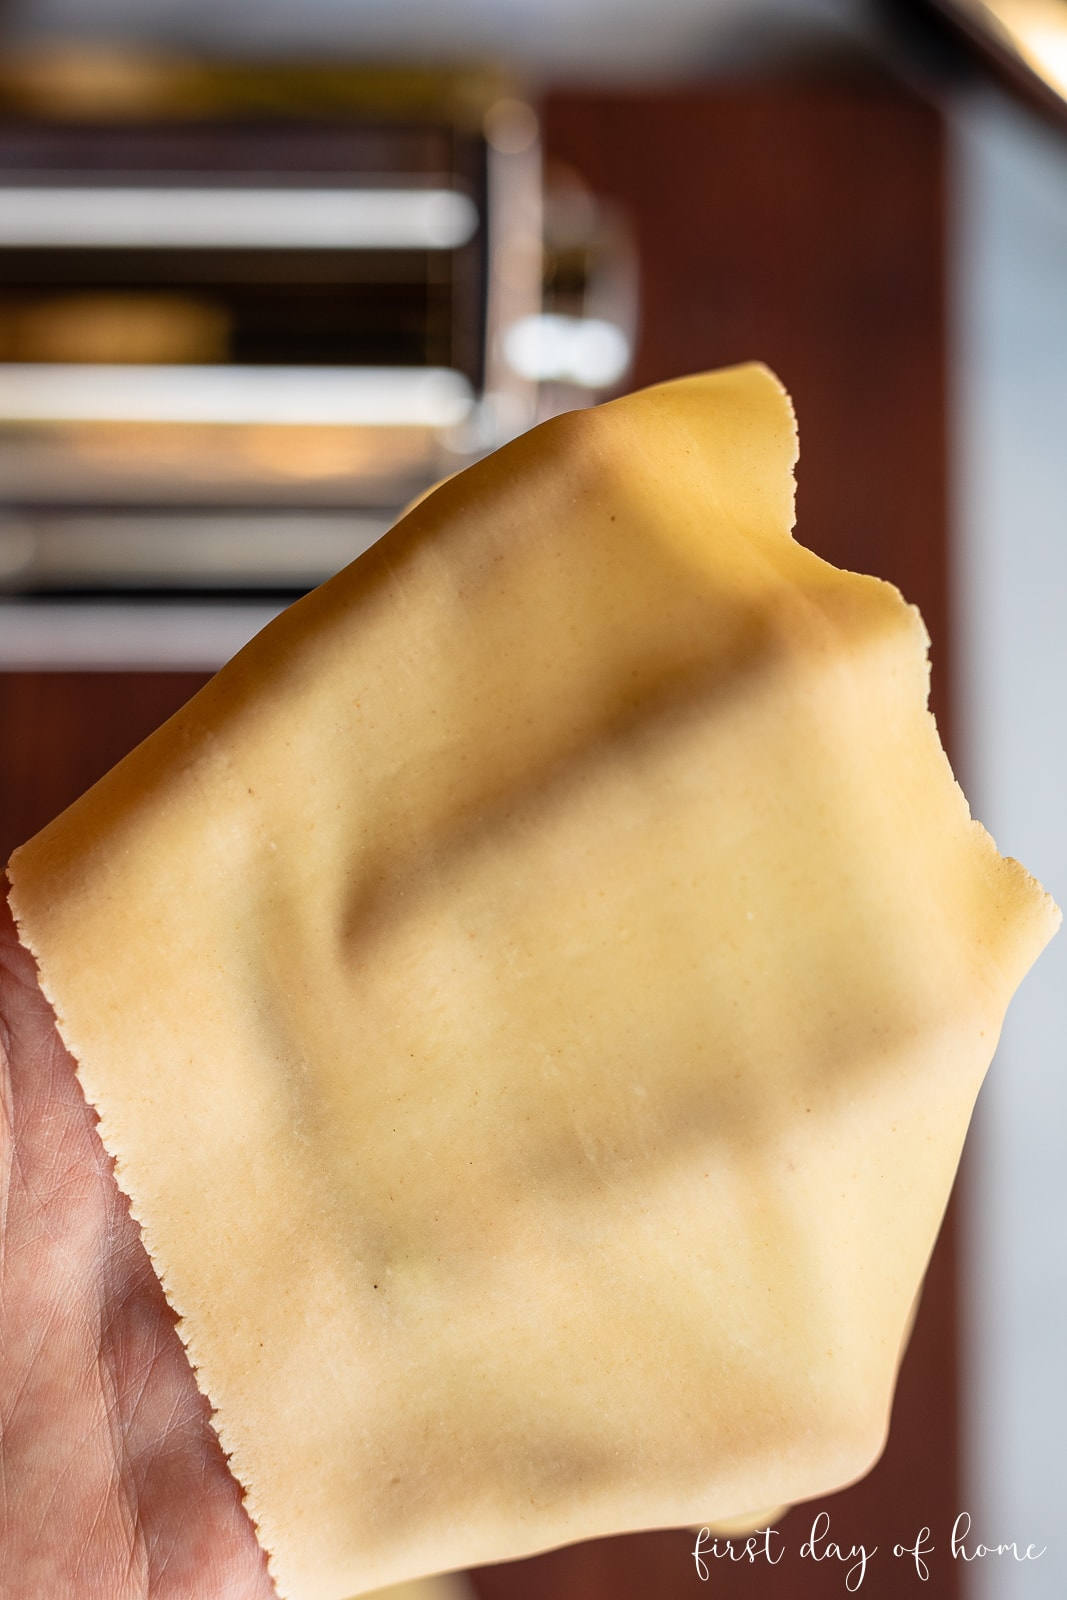 Homemade pasta before cutting into spaghetti or linguine noodles